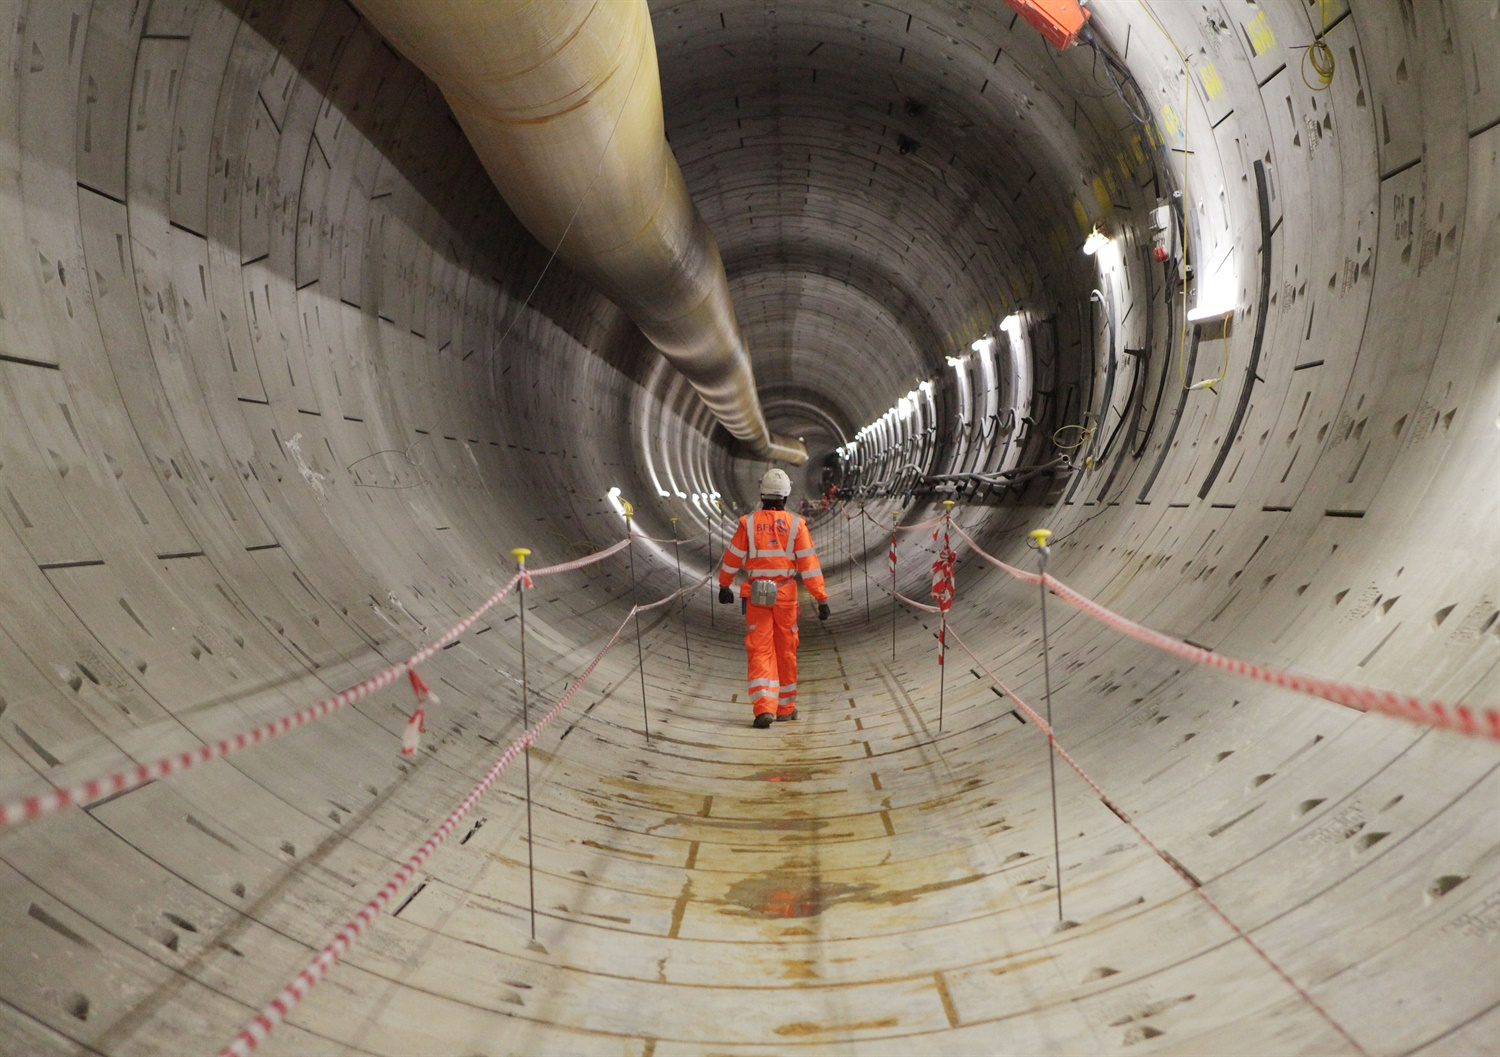 Crossrail documents reveal 'lack of welfare' for workers on site